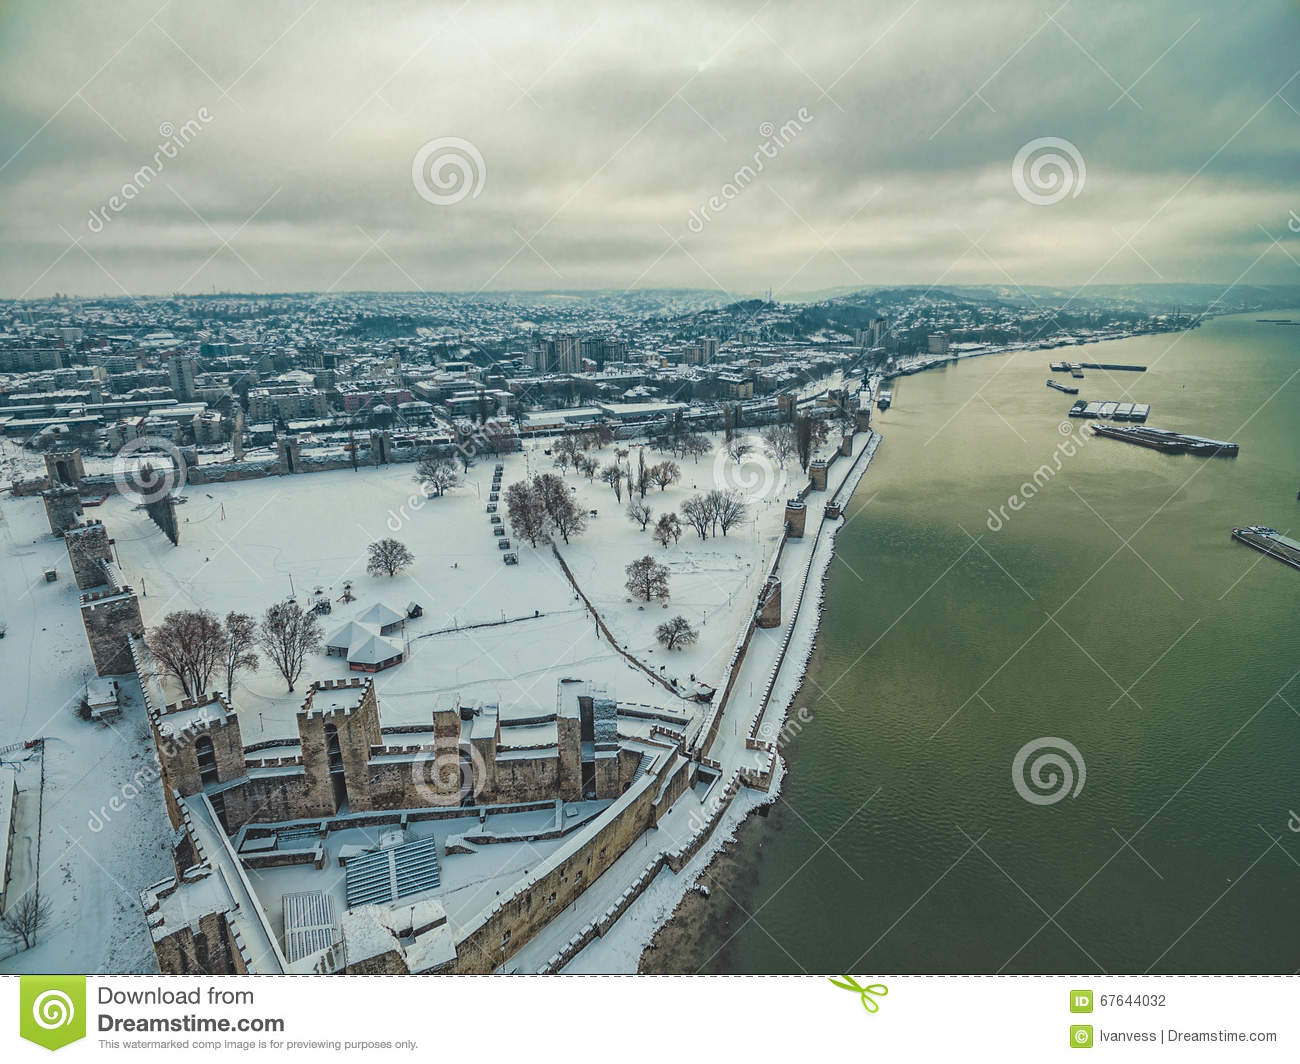 Medieval fortress covered in snow